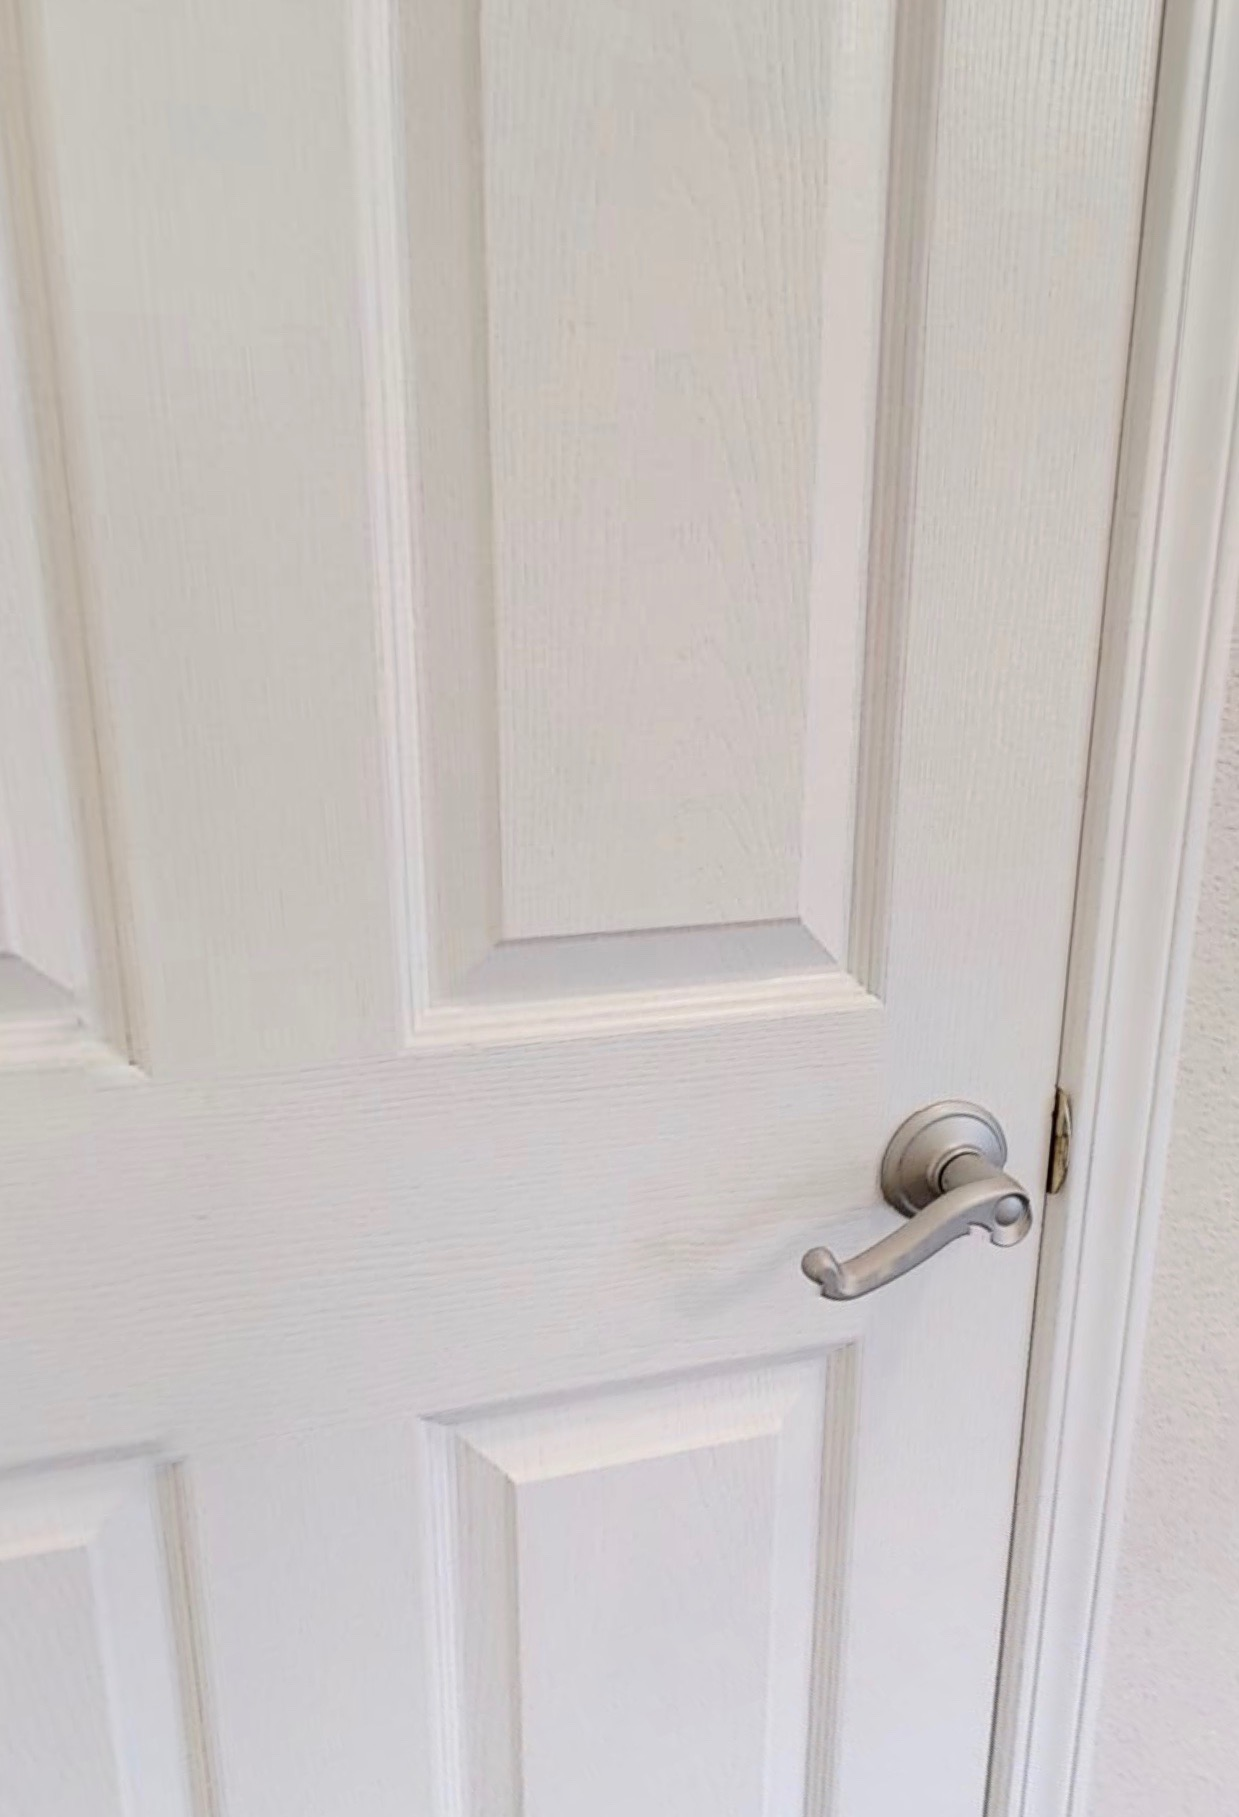 satin nickel spray painted door handle